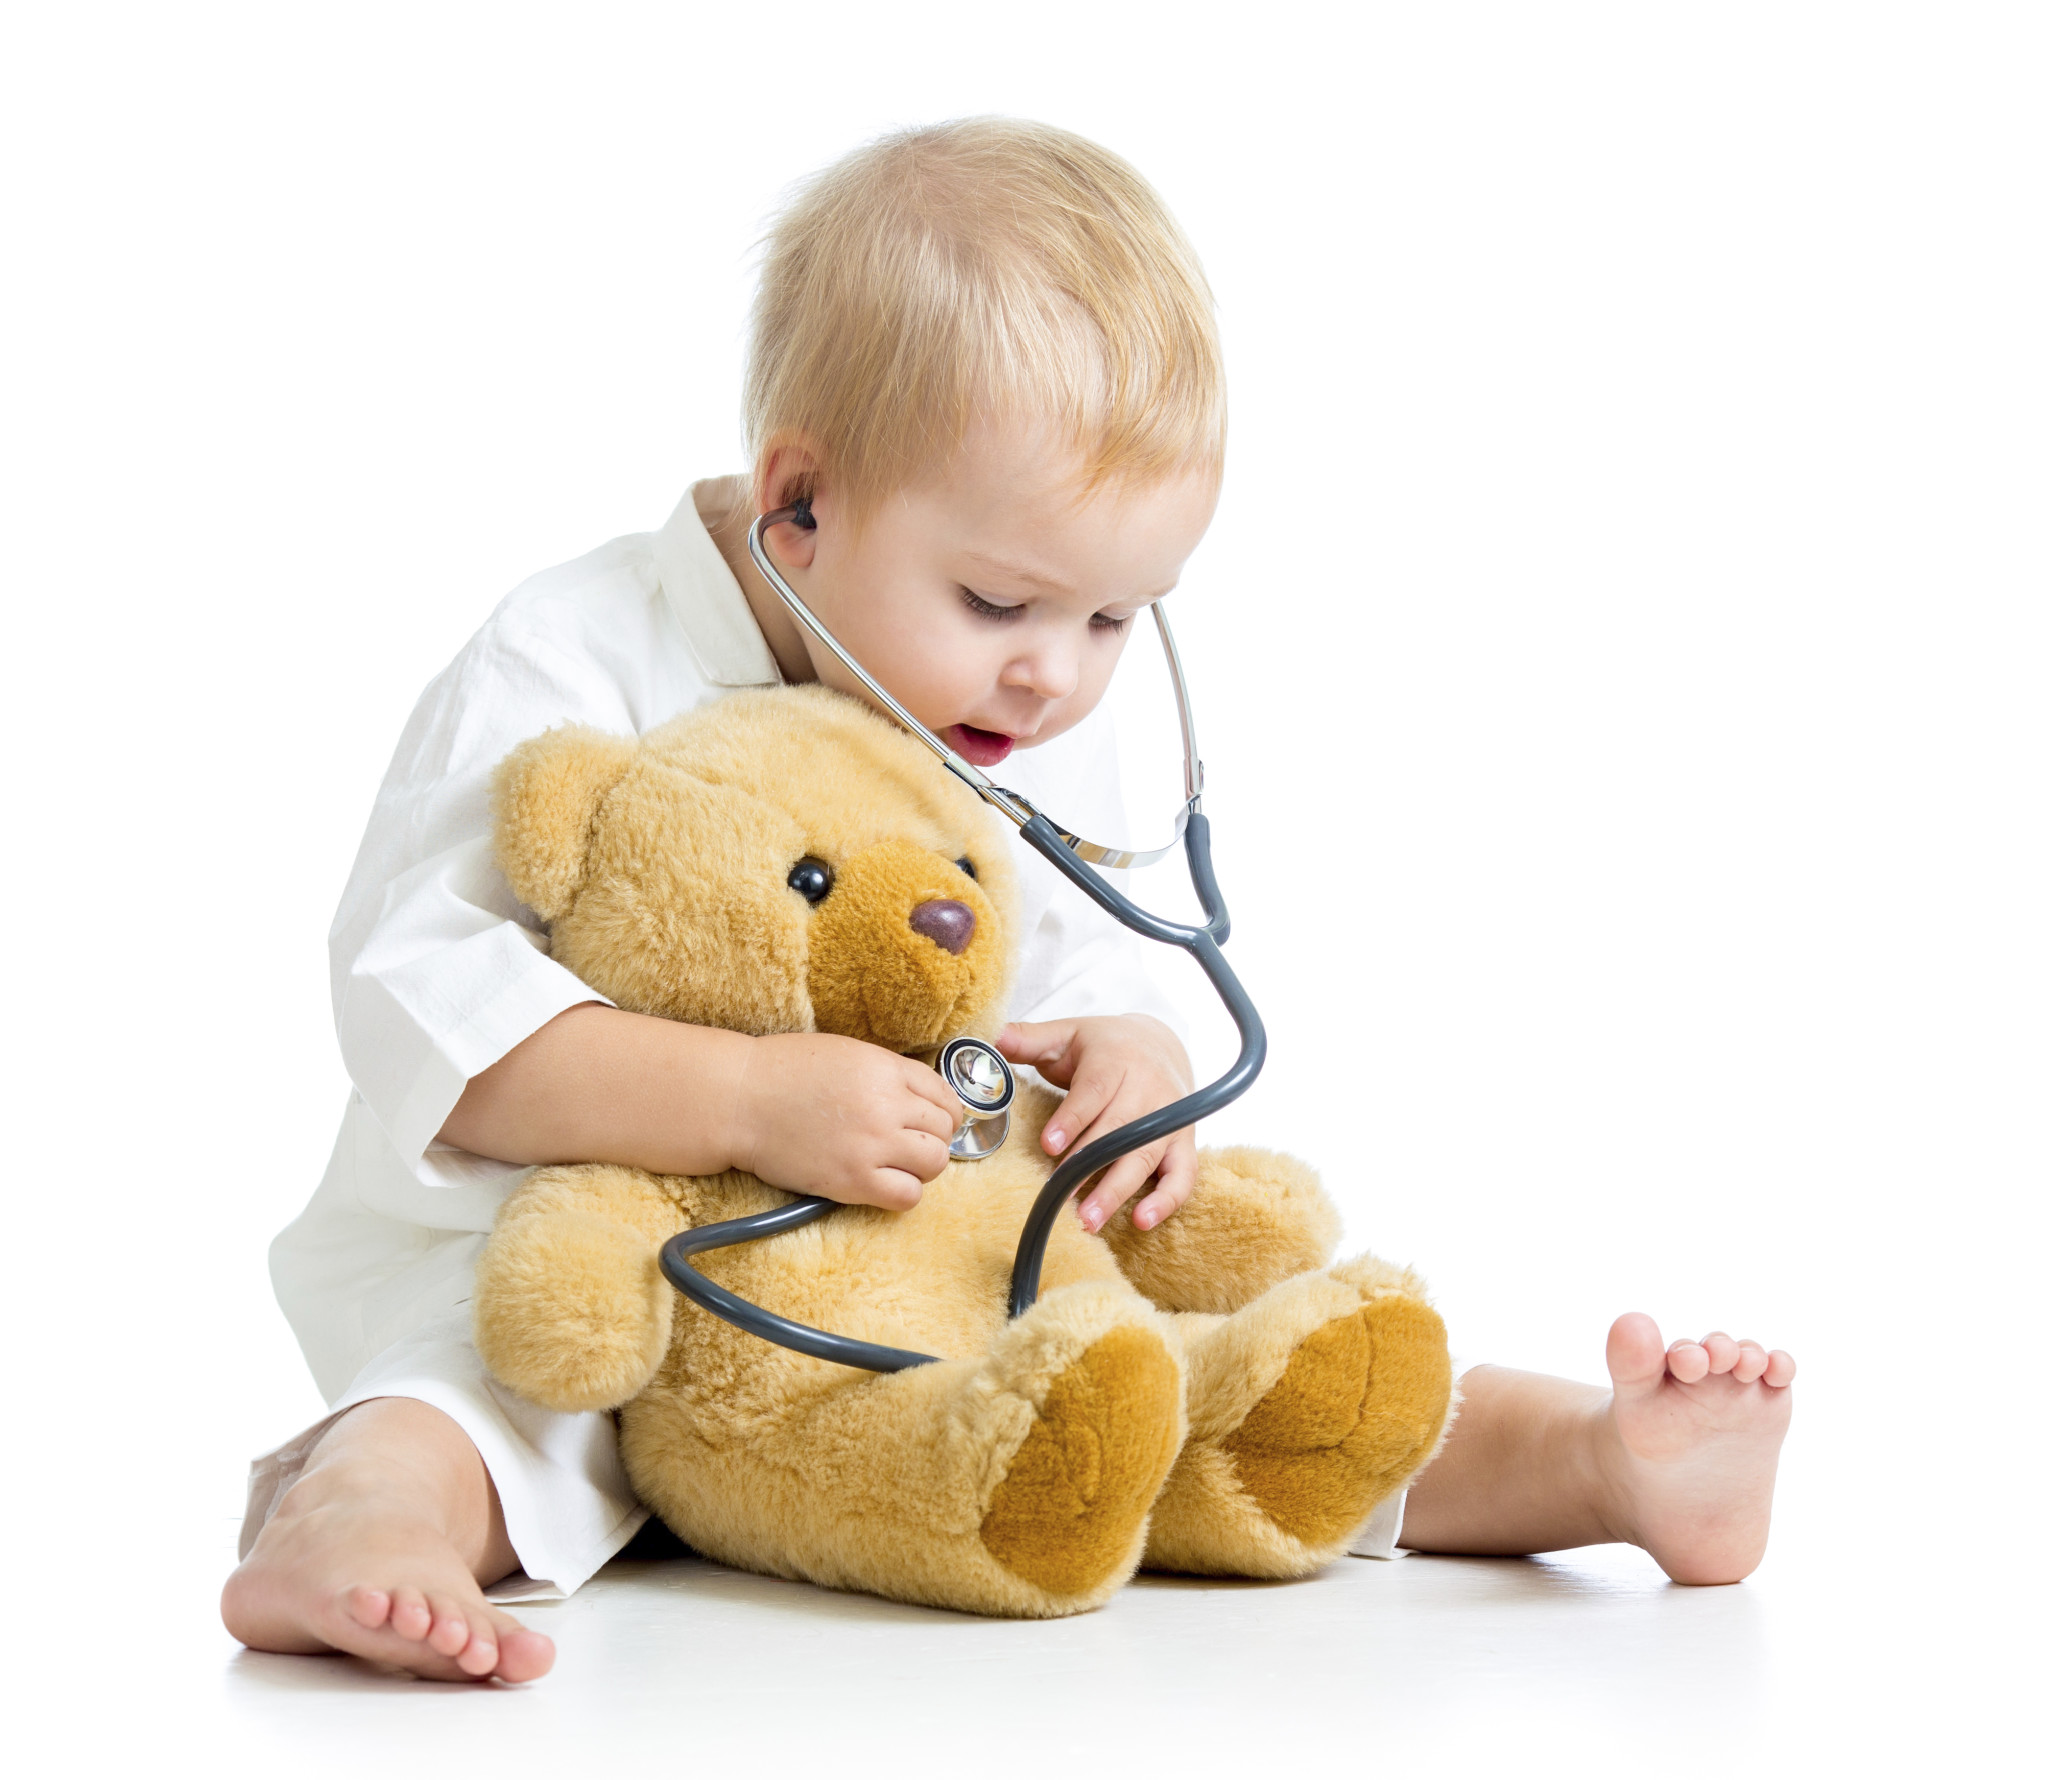 NOW OFFERING PEDIATRIC FIRST AID & CPR